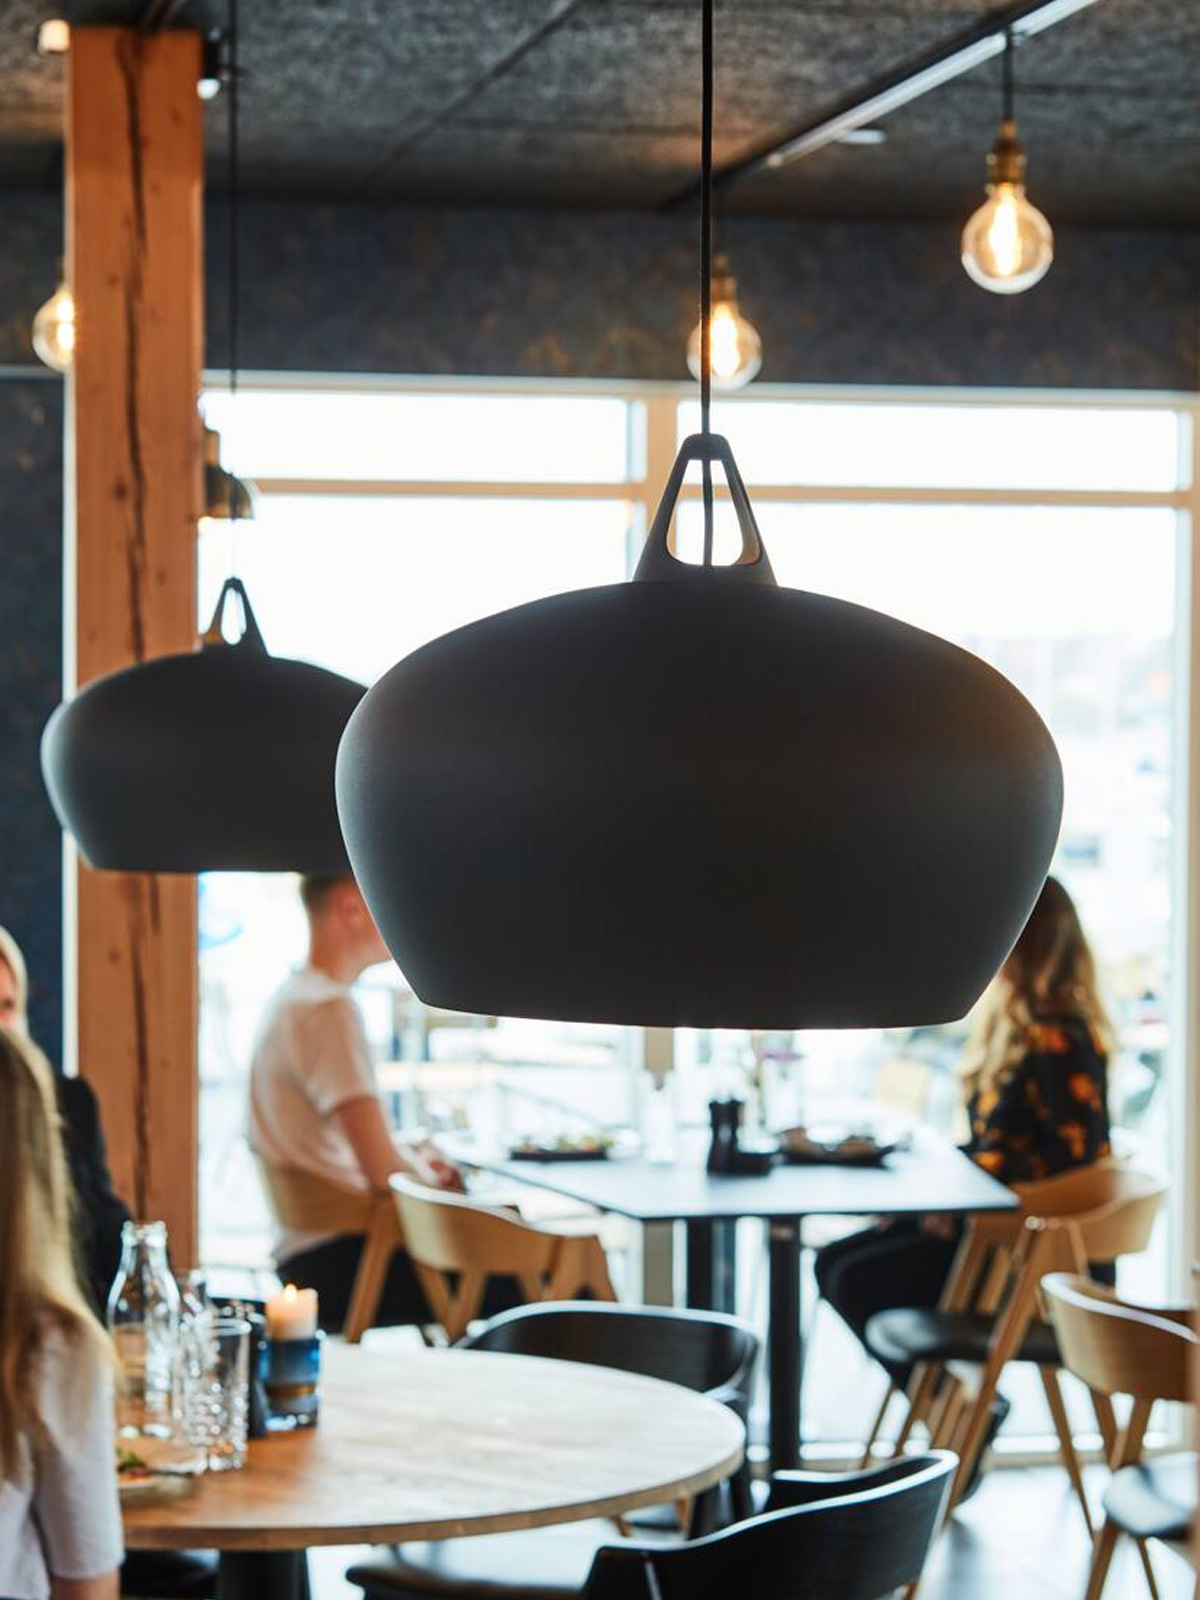 Belly Leuchte Design for the People by Nordlux Designort